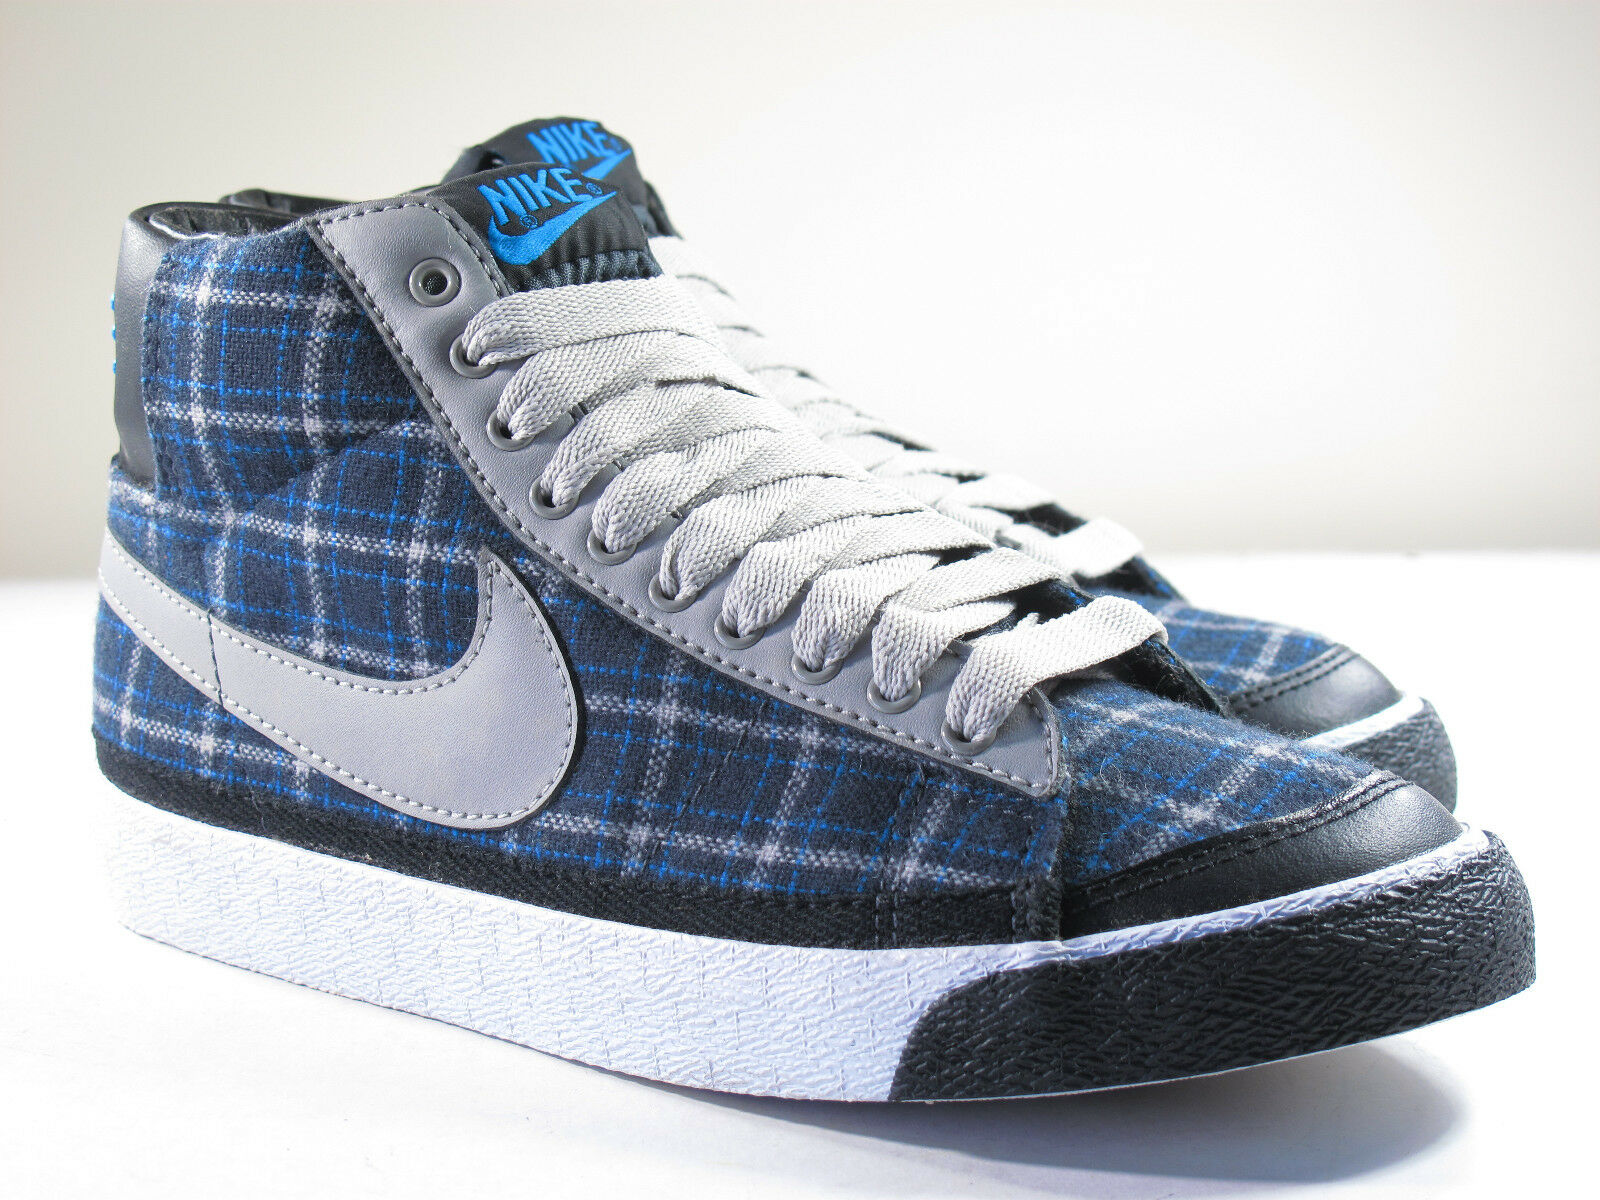 DS NIKE 2003 BLAZER X-GIRL ORION blueE WMN 7.5 SUPREME SNAKE ATMOS SAFARI DUNK